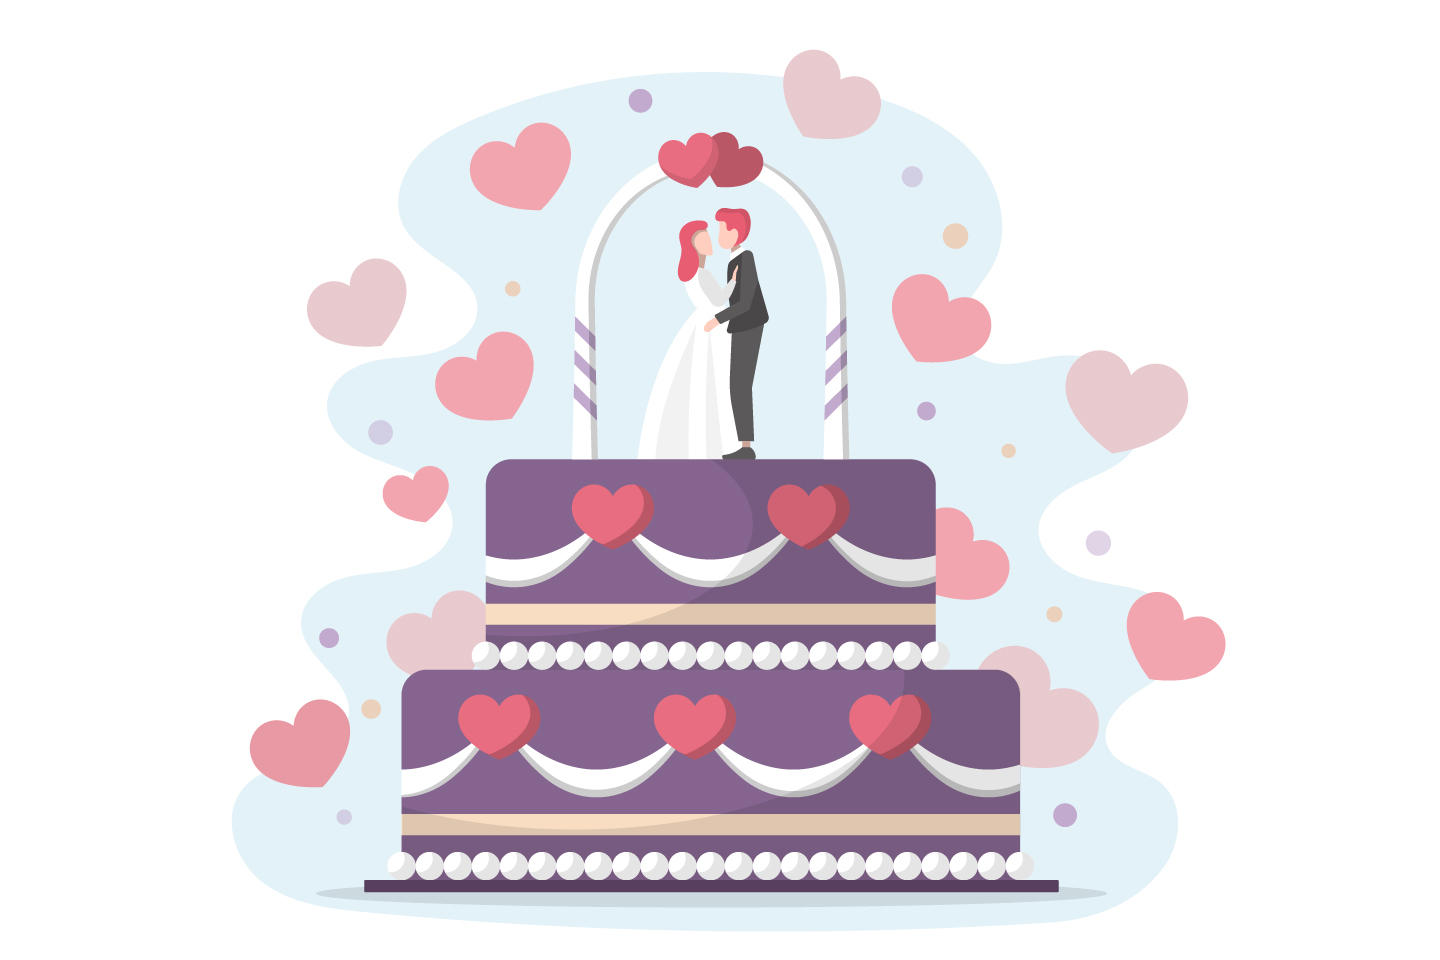 Big Wedding Cake with the Bride and Groom Vector Design